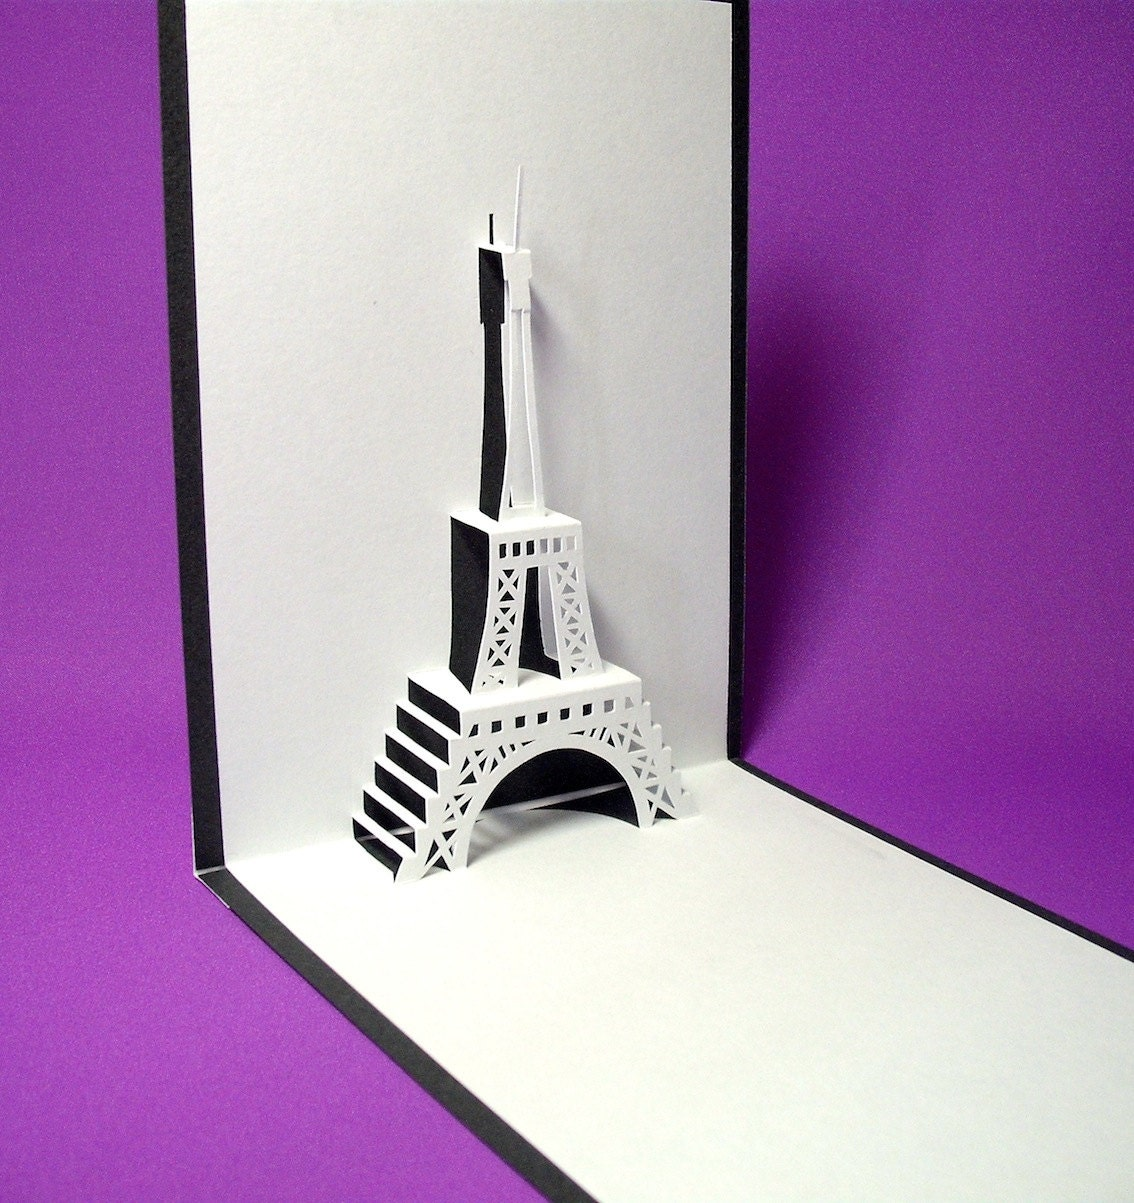 eiffel tower 2 in paris pop up card by galinblack on etsy. Black Bedroom Furniture Sets. Home Design Ideas